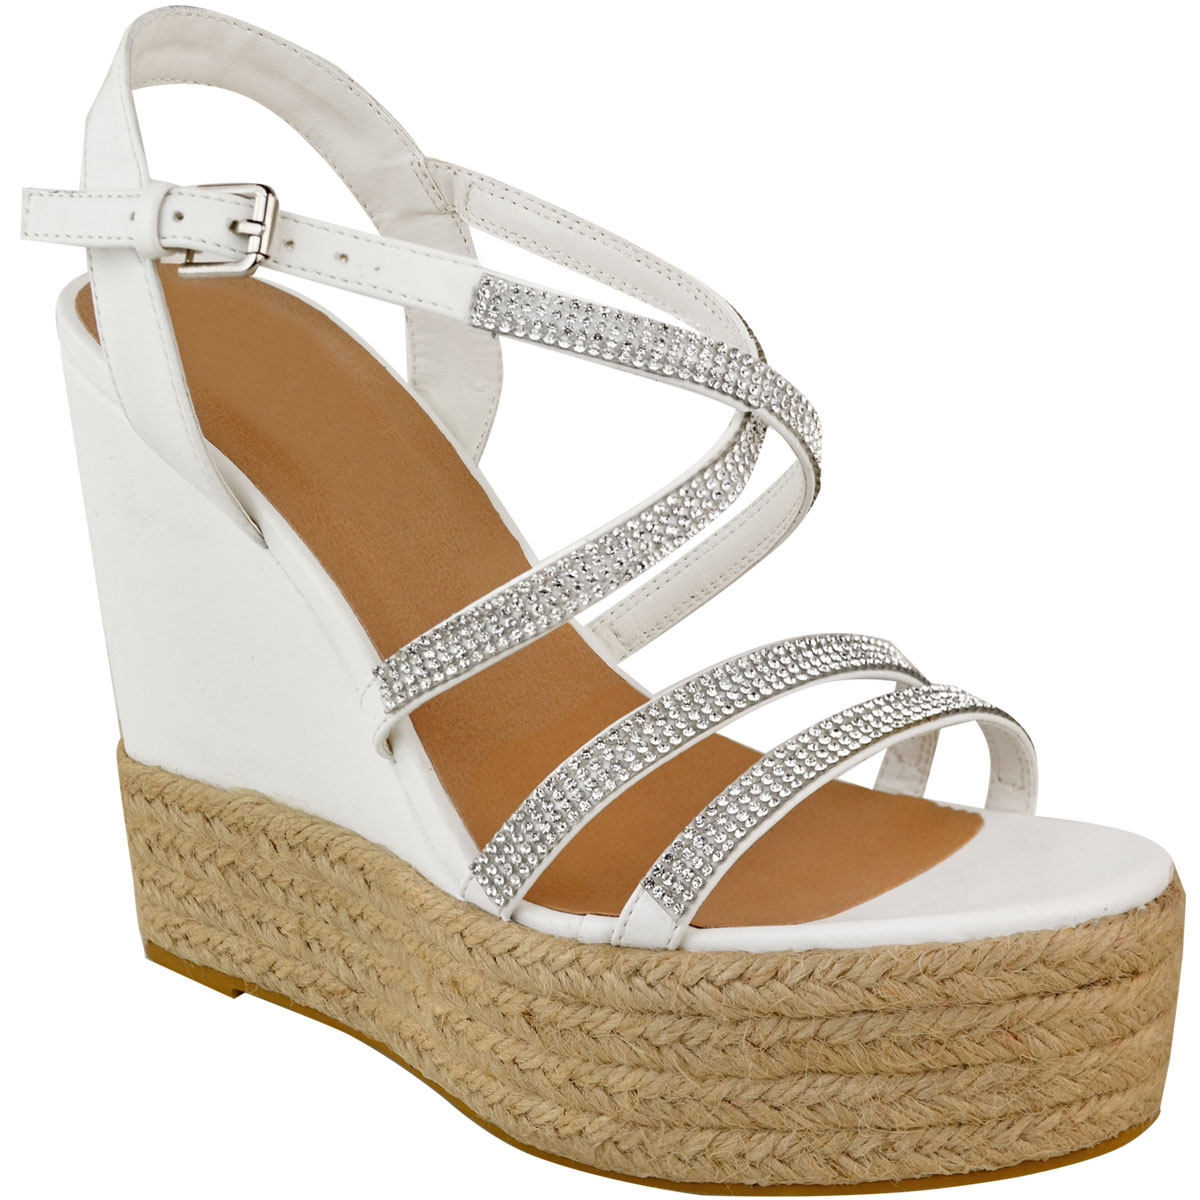 Womens-Ladies-Strappy-Diamante-Wedge-High-Heels-Sandals-Platforms-Shoes-Size-UK thumbnail 8